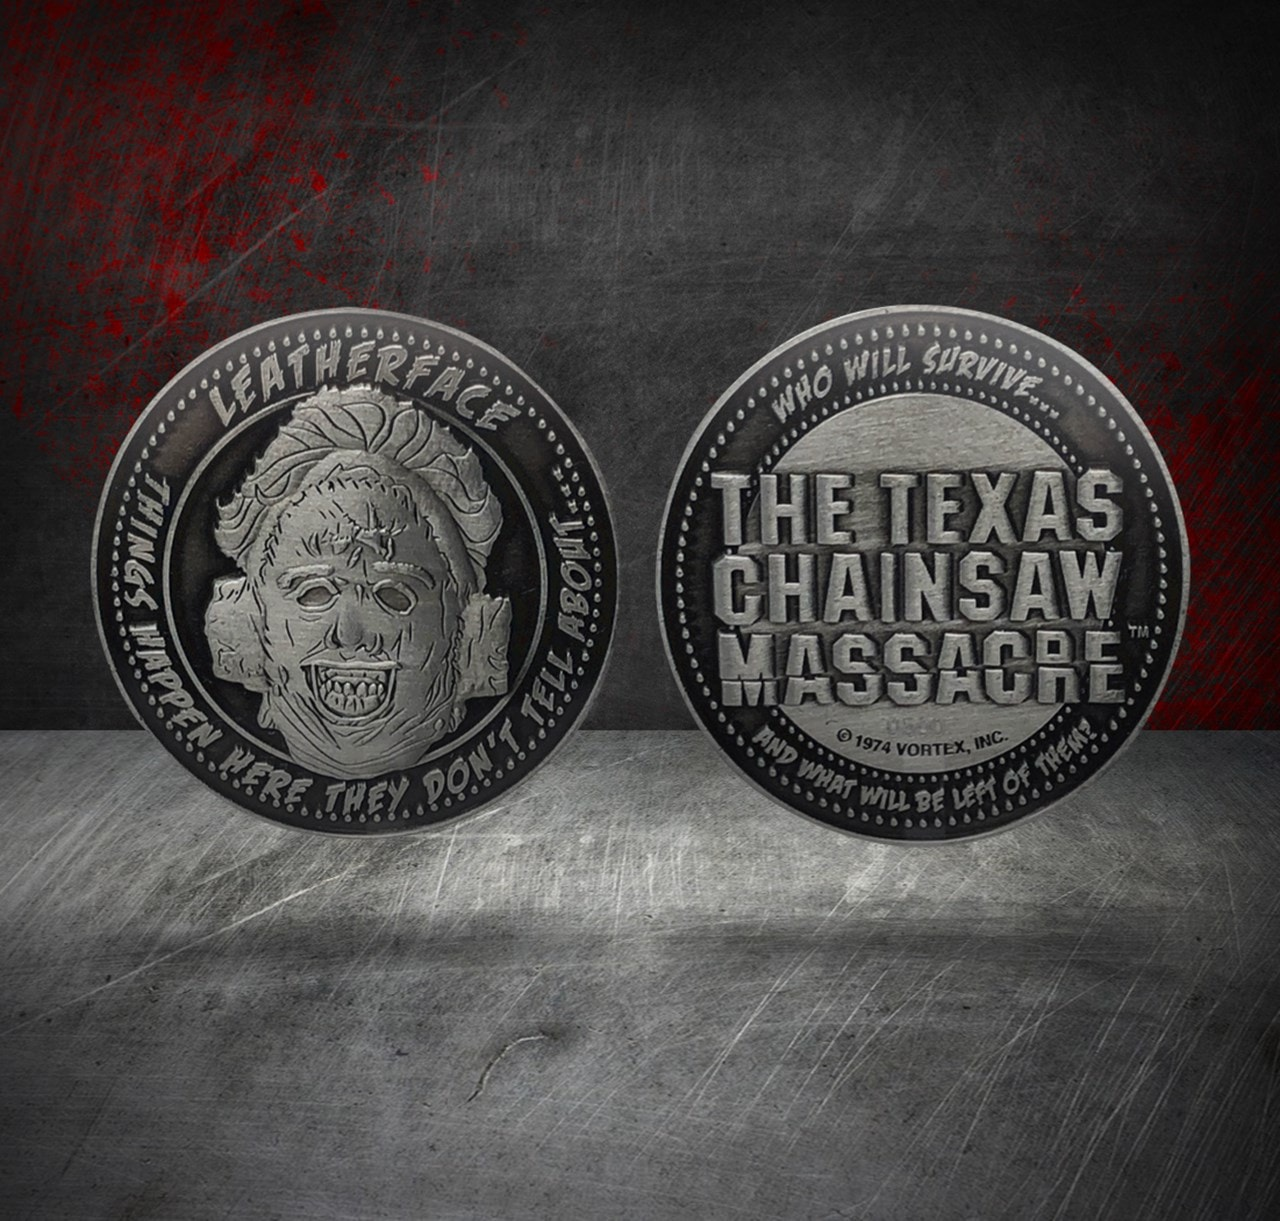 Texas Chainsaw Massacre: Limited Edition Coin - 1